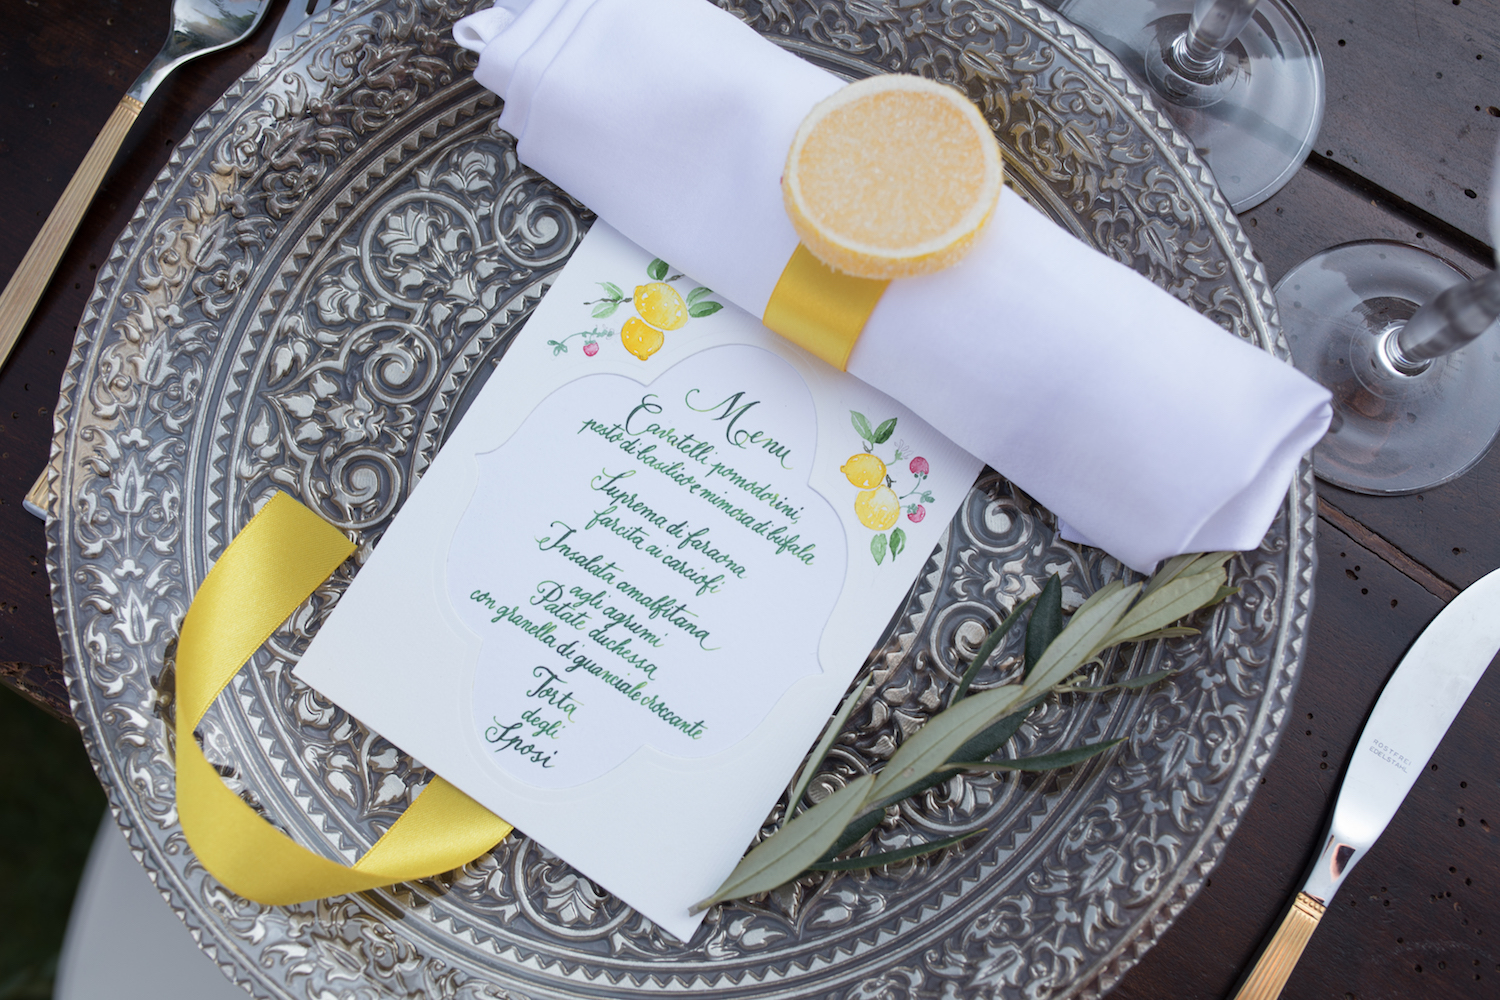 Wedding Dinner Menu from a Lemon Yellow Garden Wedding Styled Shoot in Rome Italy - by Jess Palatucci Photography - as seen on www.BrendasWeddingBlog.com